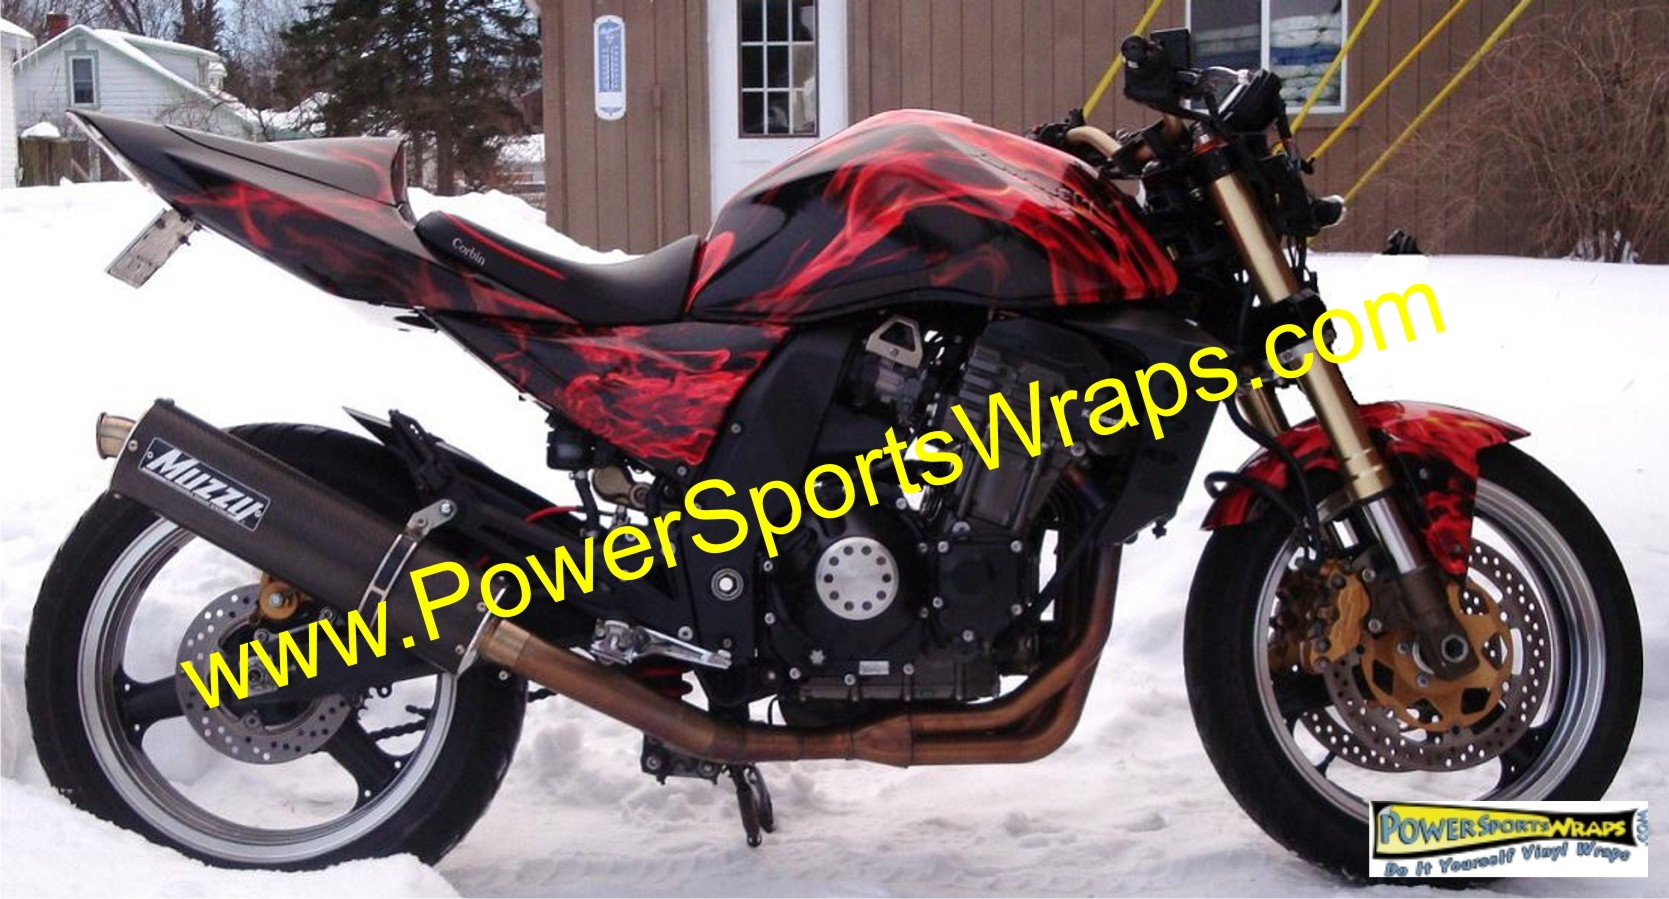 Motorcycle Vinyl Wraps Archives Powersportswrapscom - Vinyl bike wrapmotorcycle wrap archives powersportswrapscom